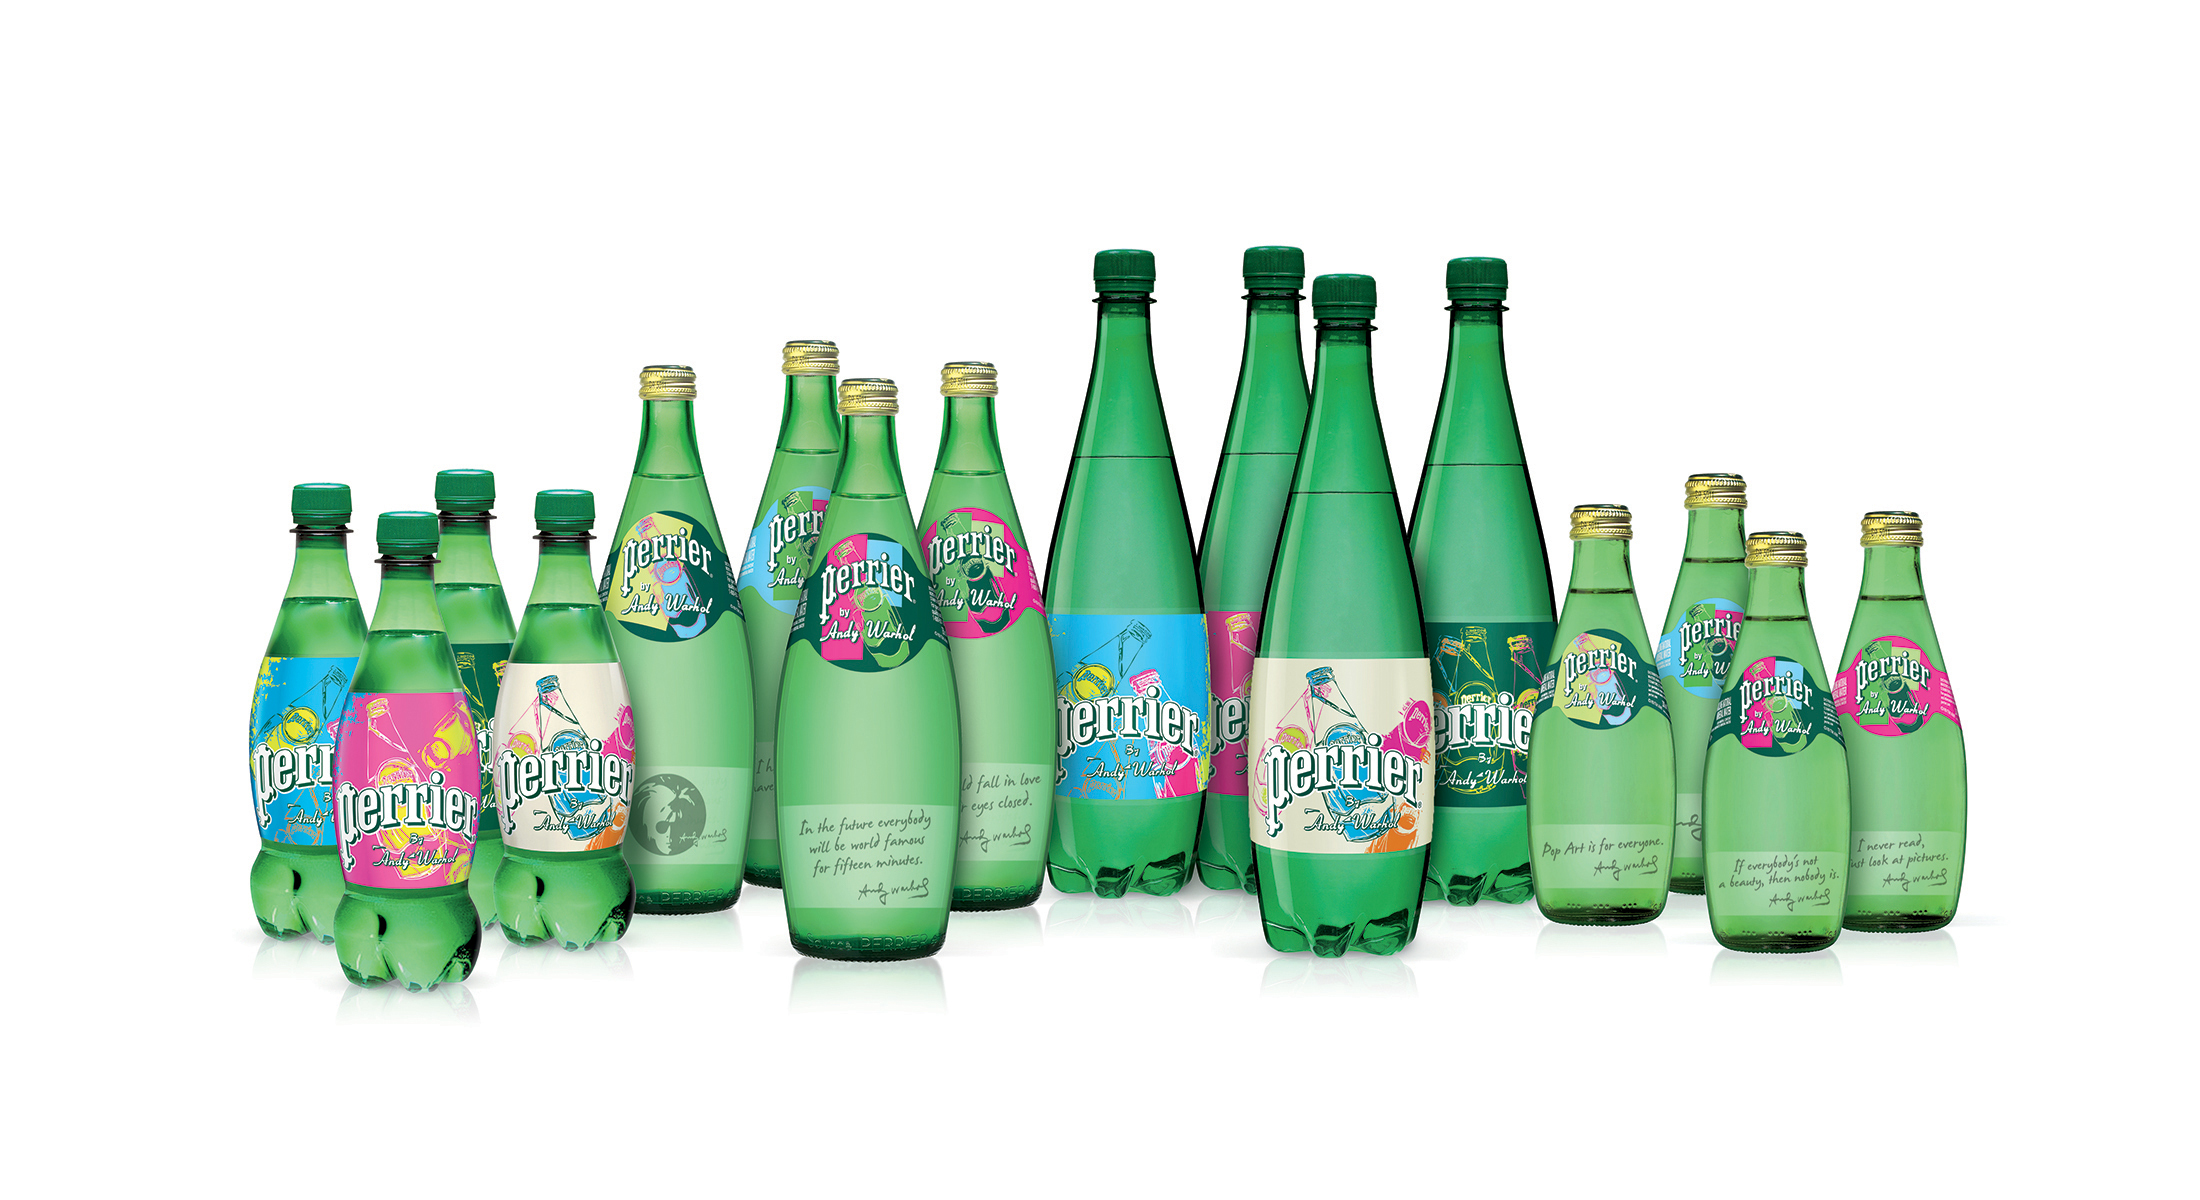 Courtesy of businesswire.com.  Perrier's Andy Warhol collector bottles - available in both glass and plastic.